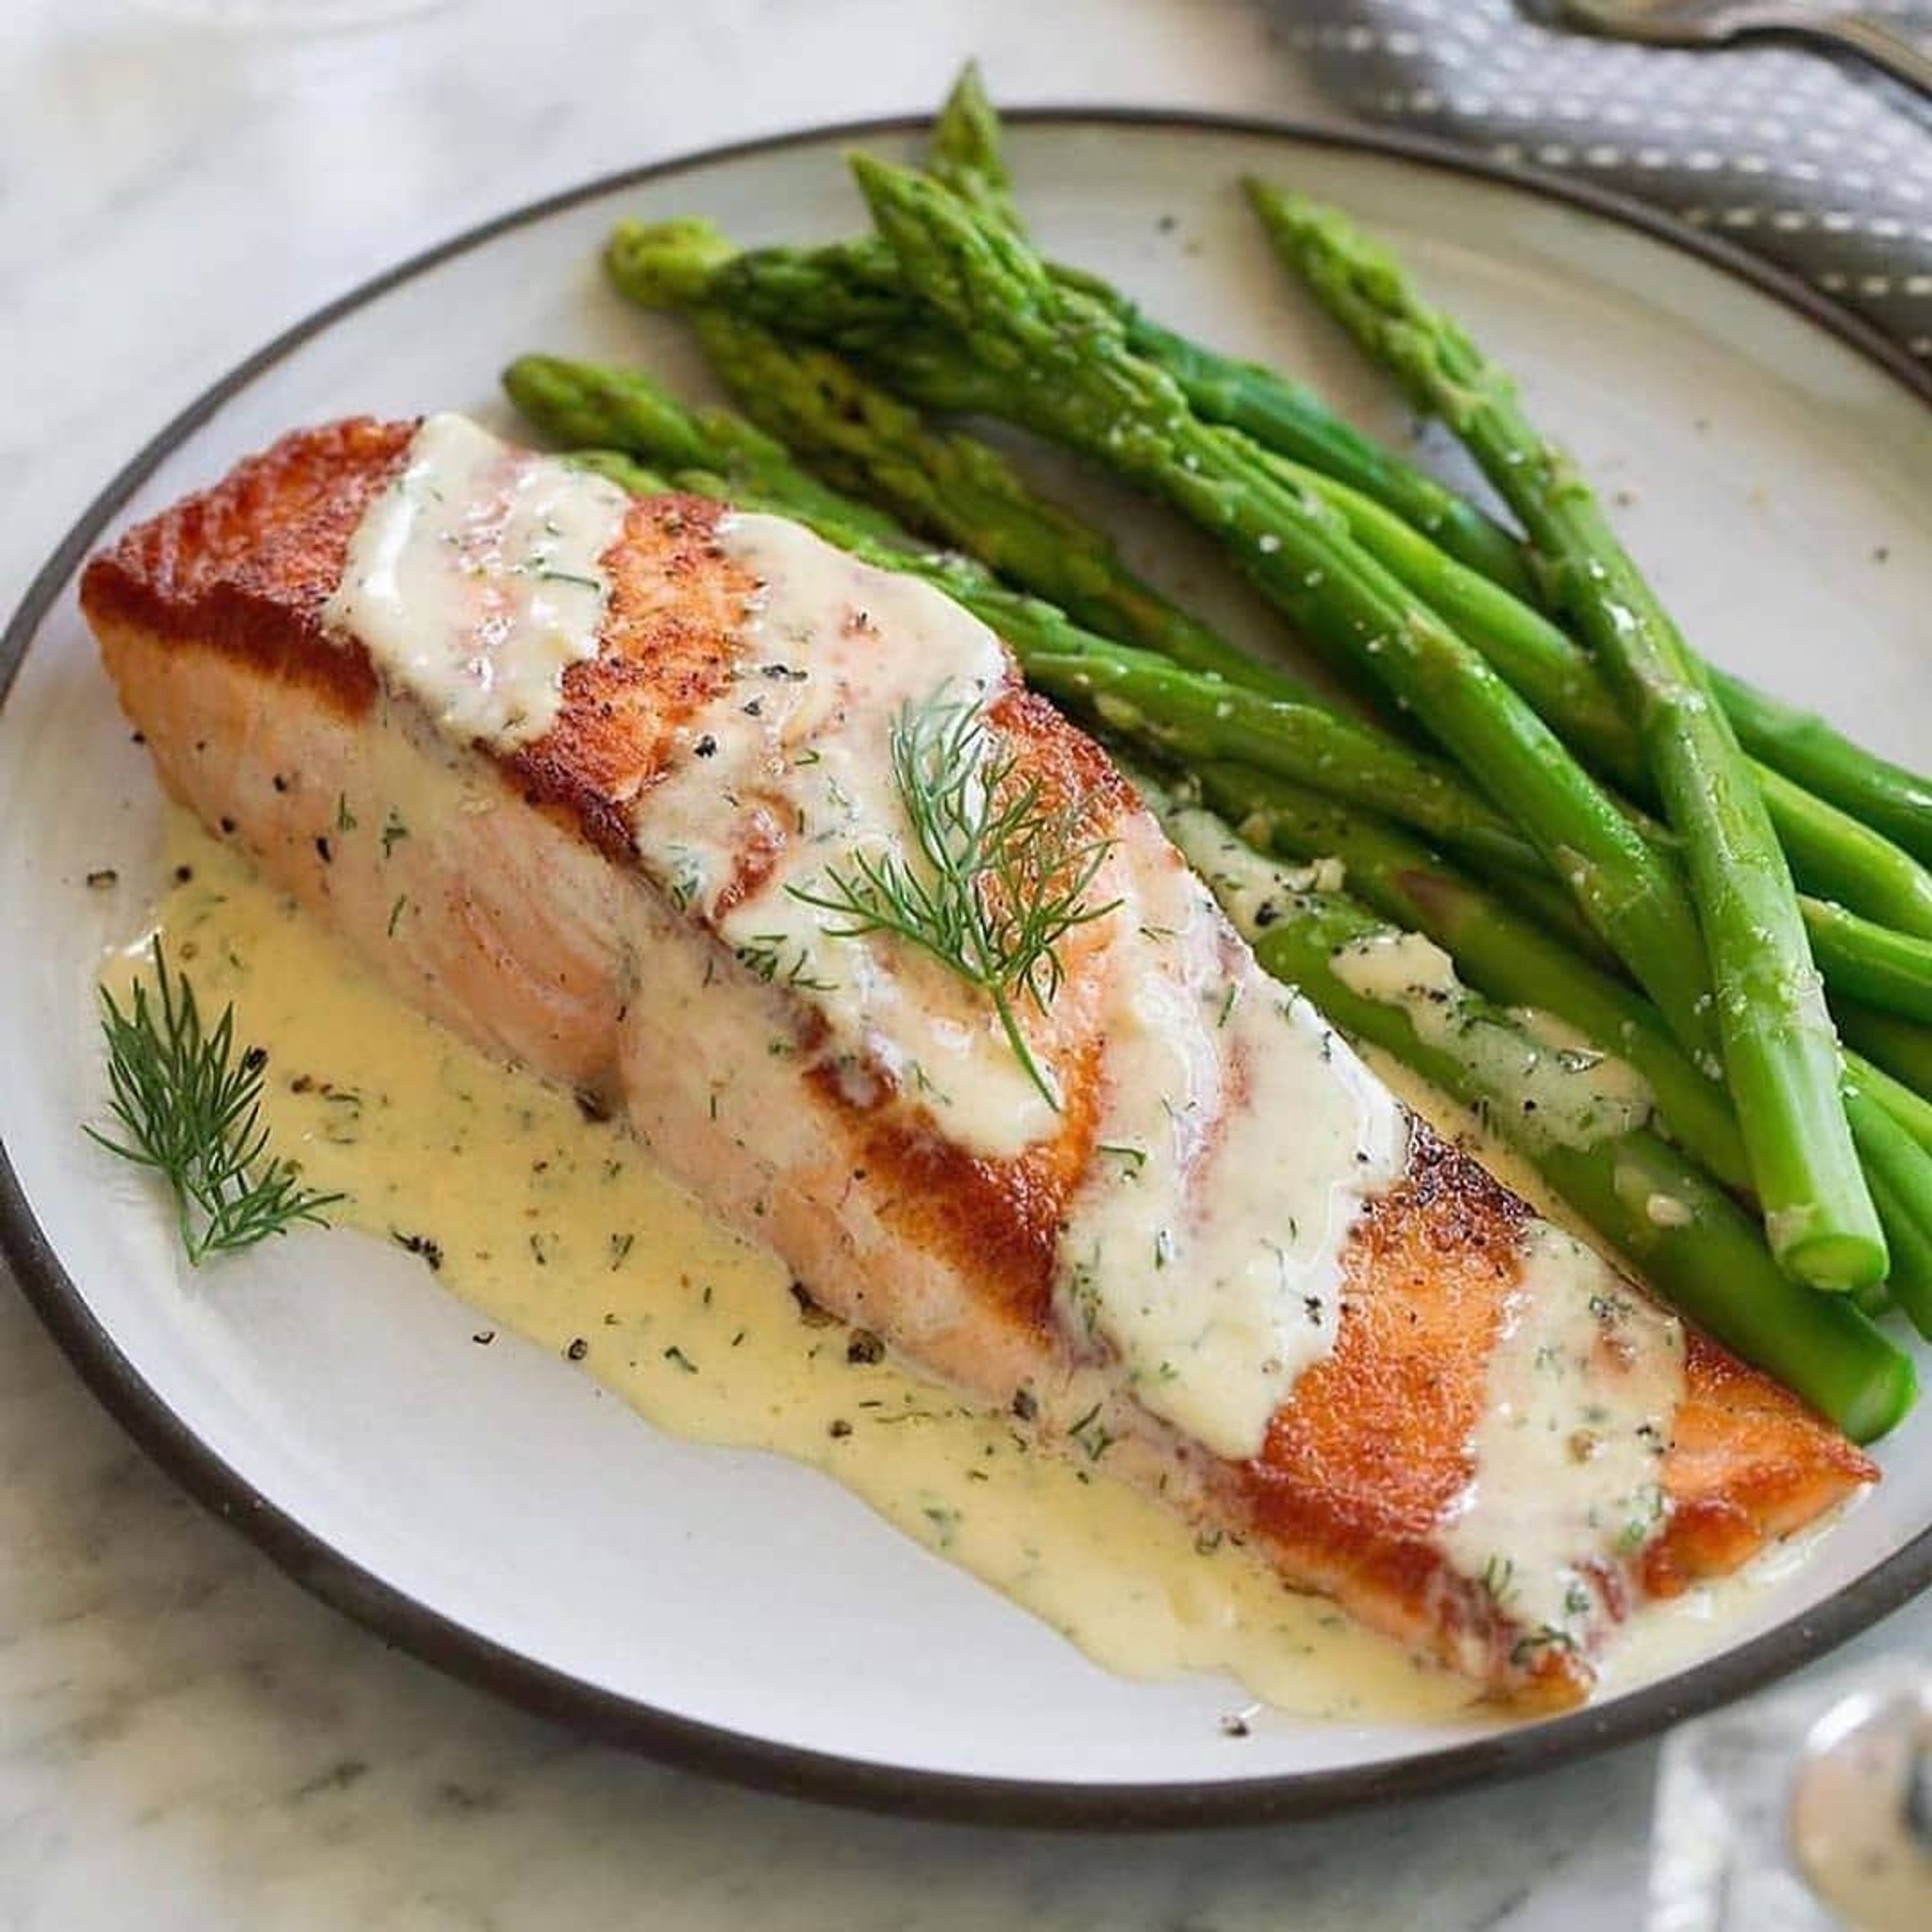 Pan Seared Salmon with Creamy Garlic Dijon Sauce (Portion Control Plate Recommended)